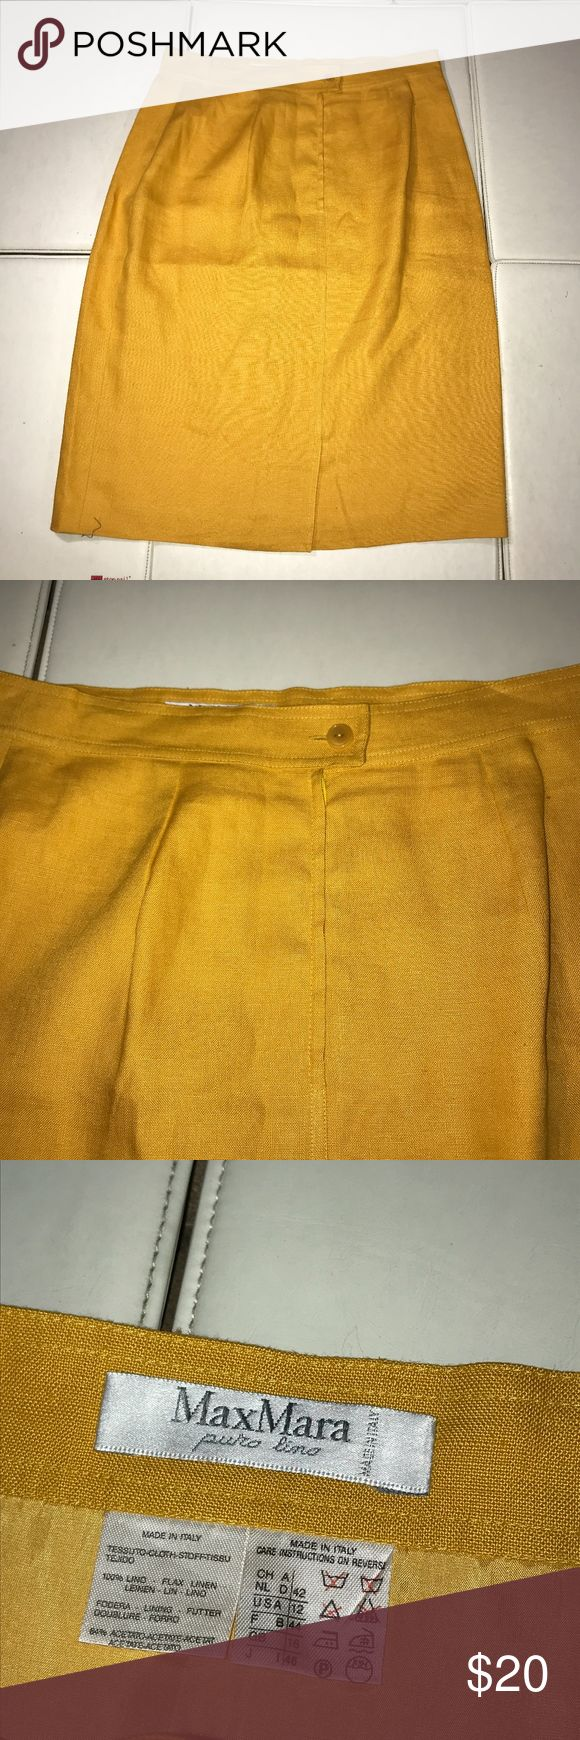 MAXMARA Pencil Skirt Yellow Size 12 100% Lino L Skirt is in very good condition. size 12 US. 100% Lino Linen. Please view all pictures and ask any questions before placing a bid. All sales are final. thanks for looking. MaxMara Skirts A-Line or Full